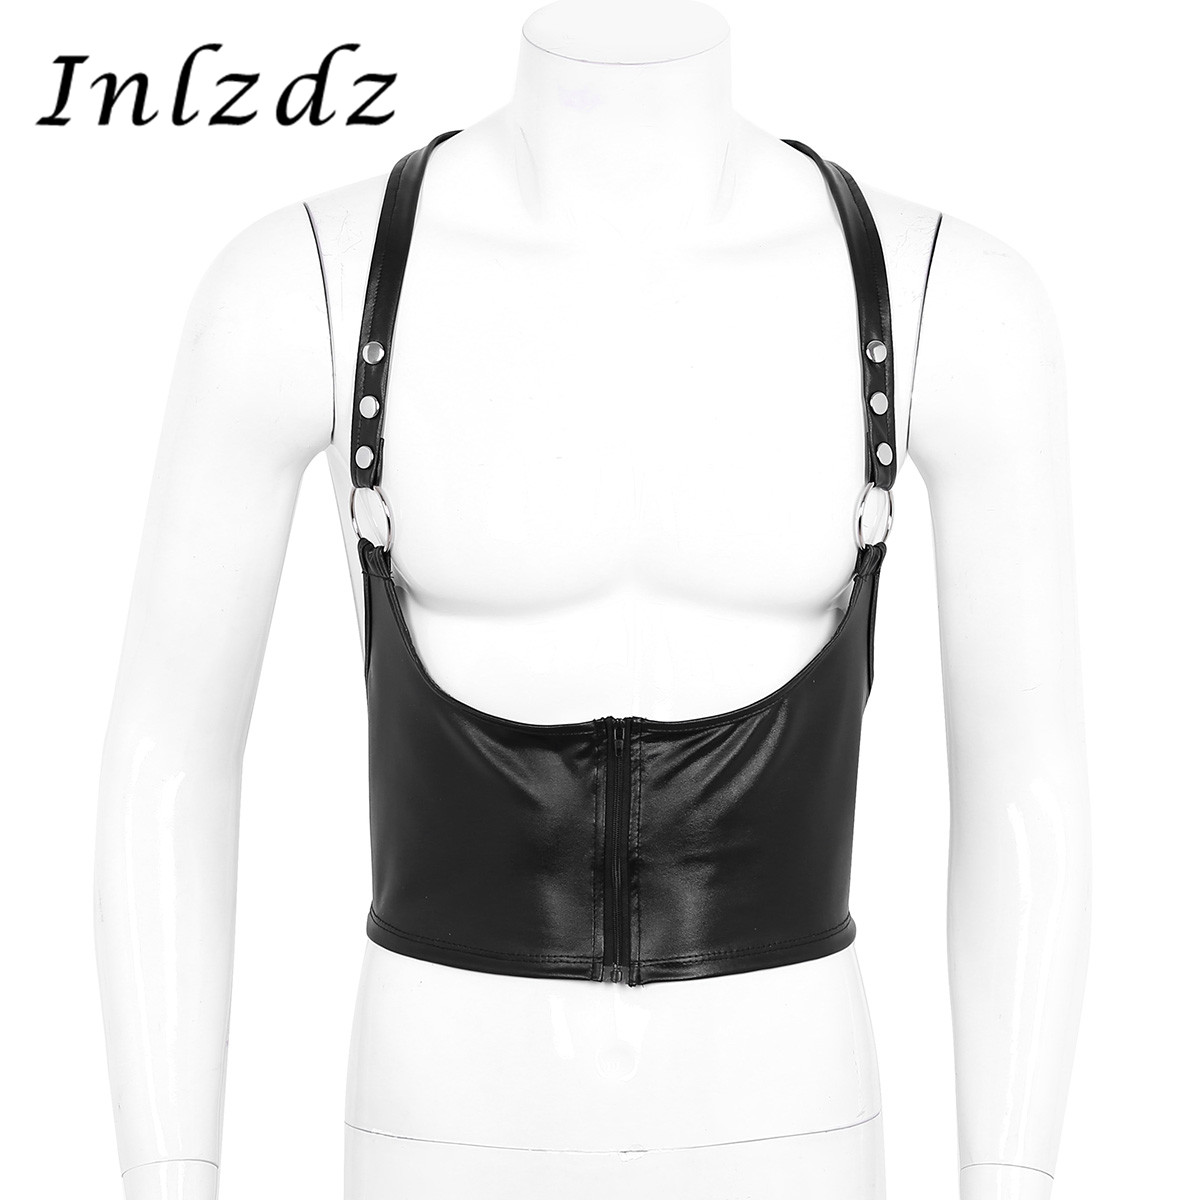 Mens Lingerie Harness Faux Leather Body Chest Harness Bondage Costume With Metal O-rings Hot Sexy Male Chest Harness